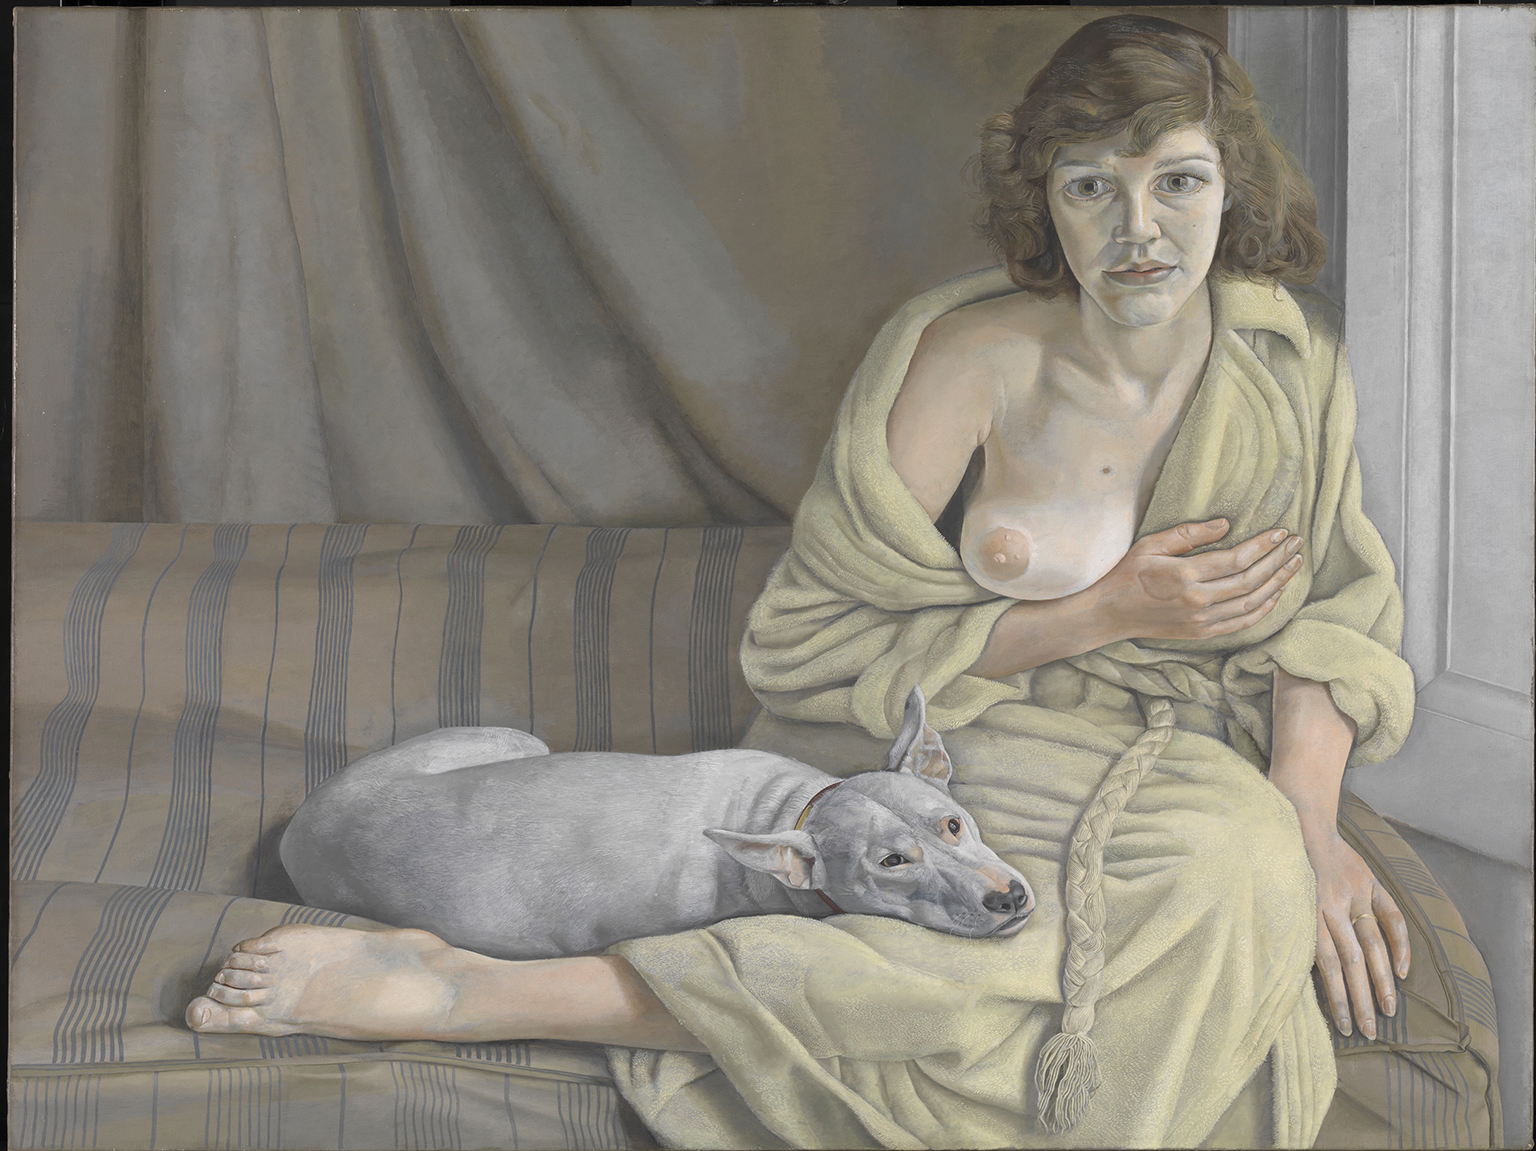 Lucian Freud, Girl with a White Dog 1950-1. Lucian Freud in Focus at Tate Liverpool 6 July 2021 - 16 January 2022